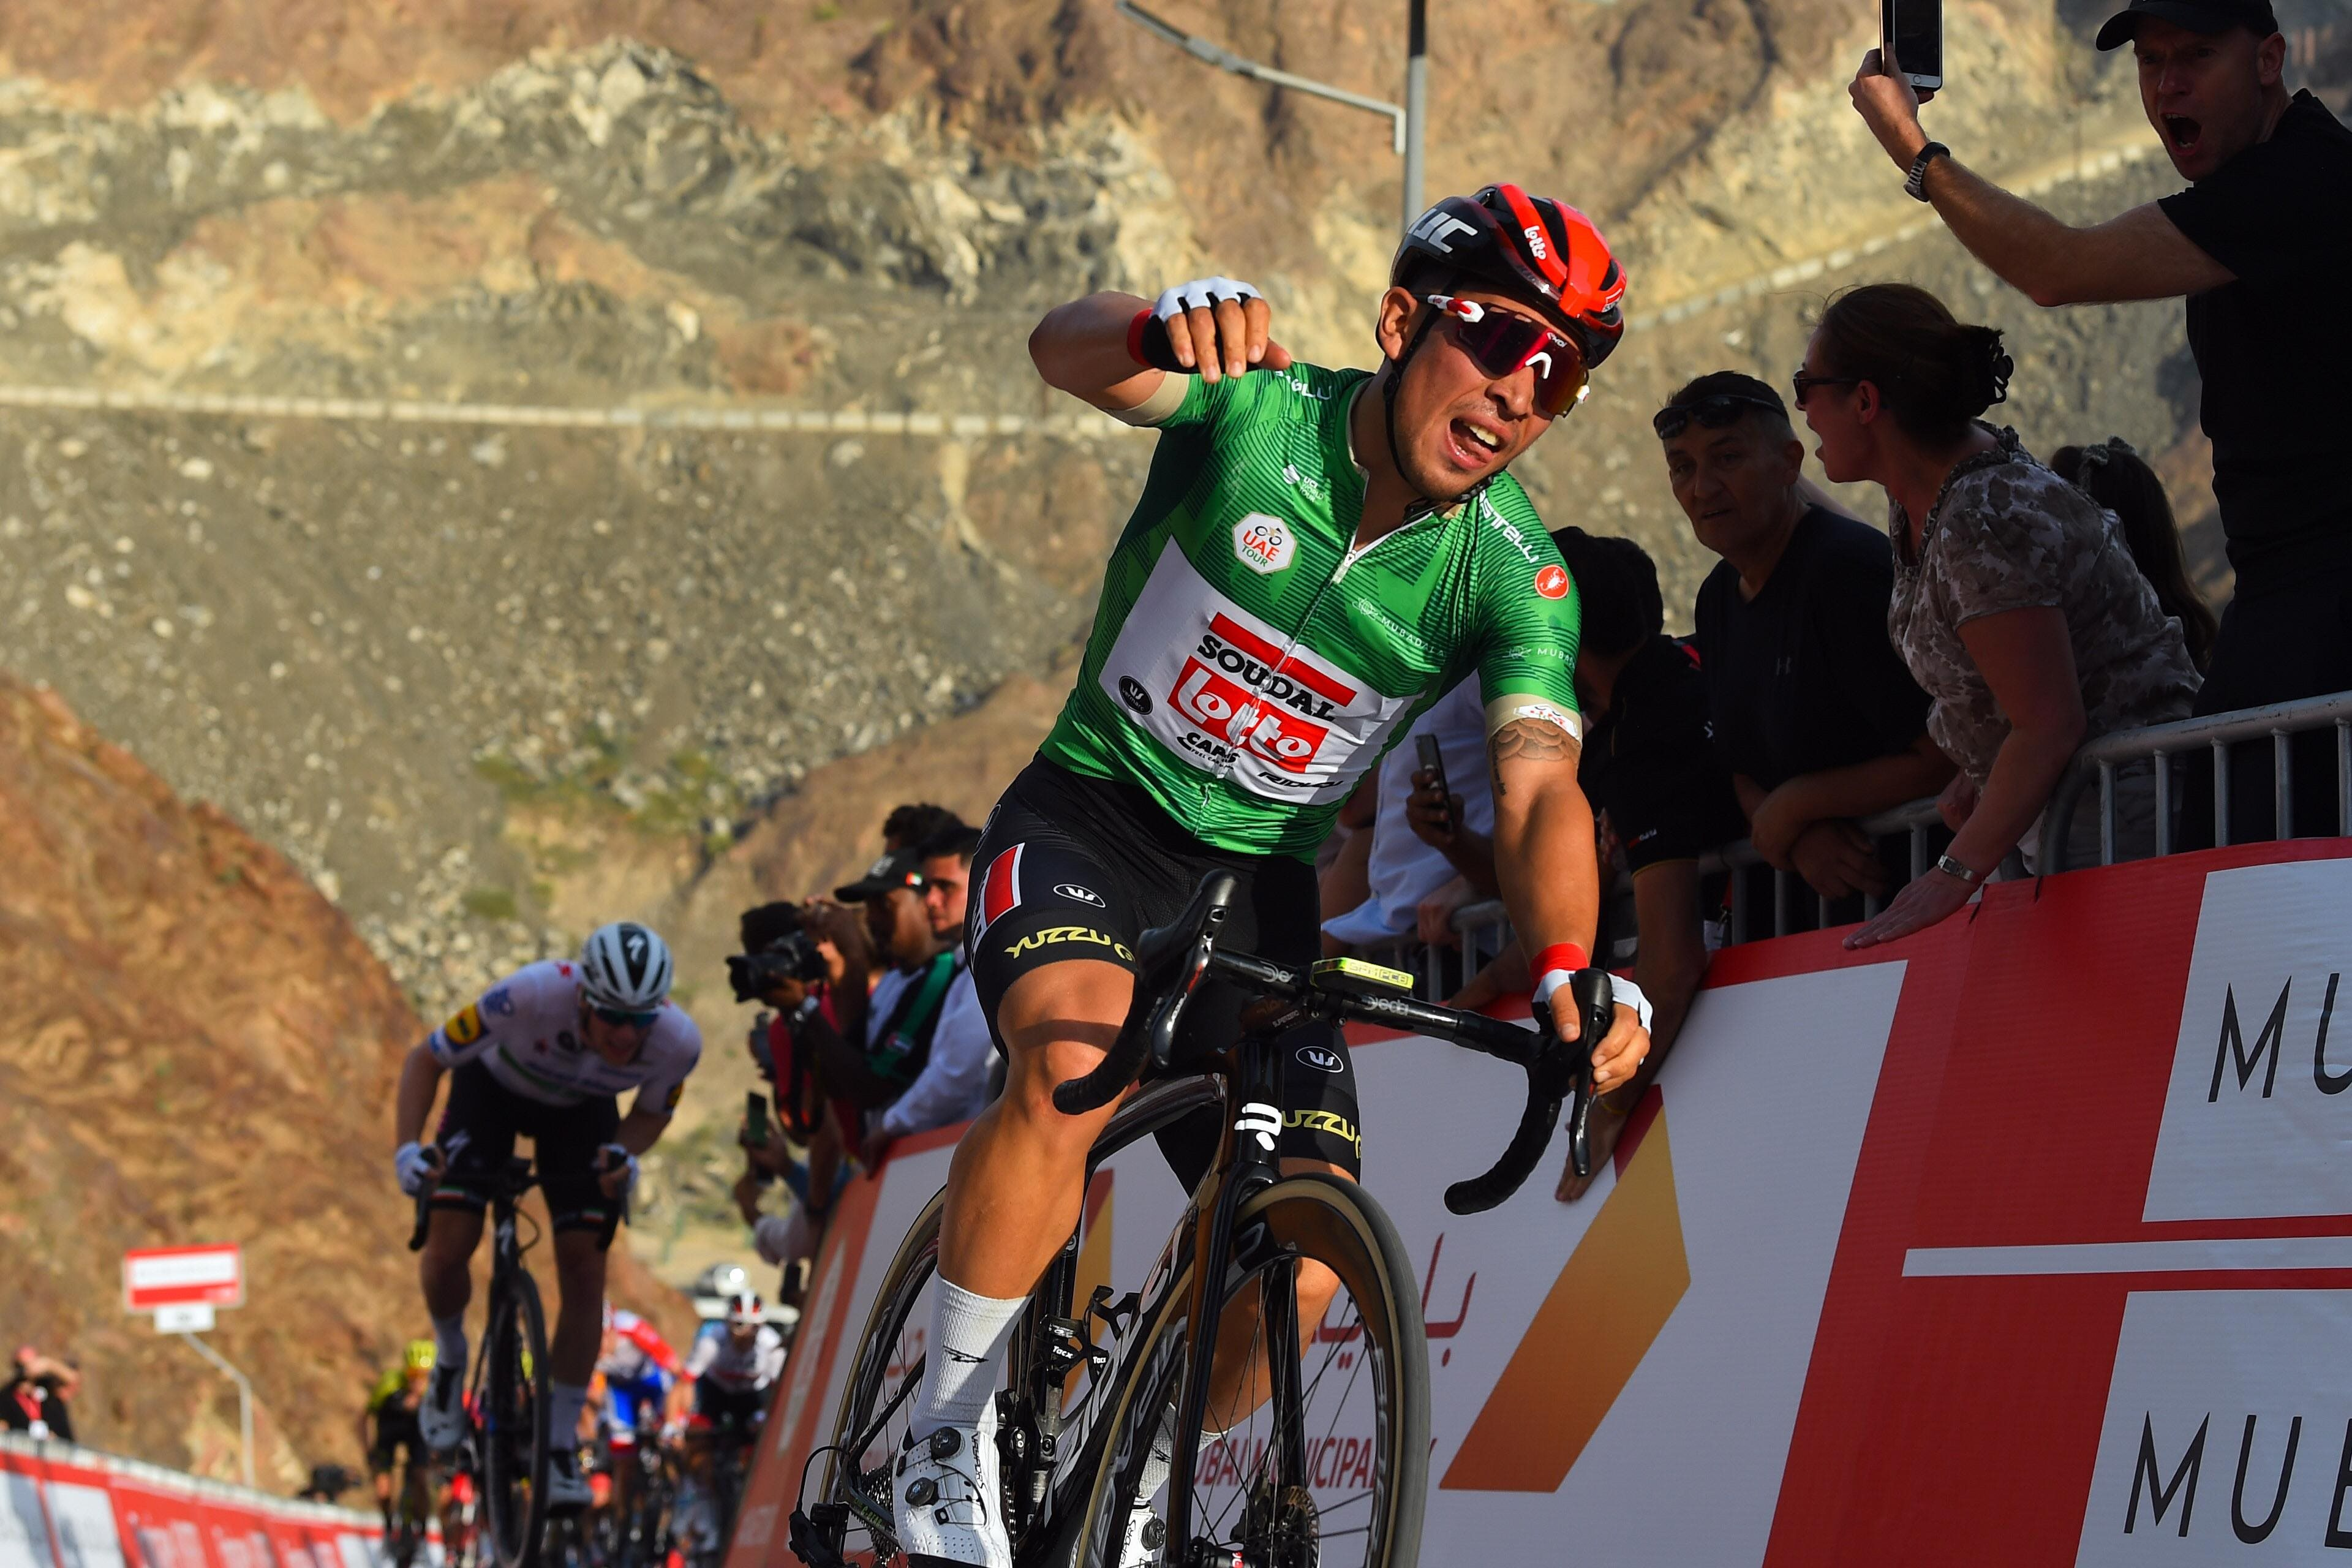 CALEB EWAN WINS THE SECOND STAGE OF THE UAE TOUR AND TAKES THE LEAD OF THE GENERAL (LOTTO SOUDAL)